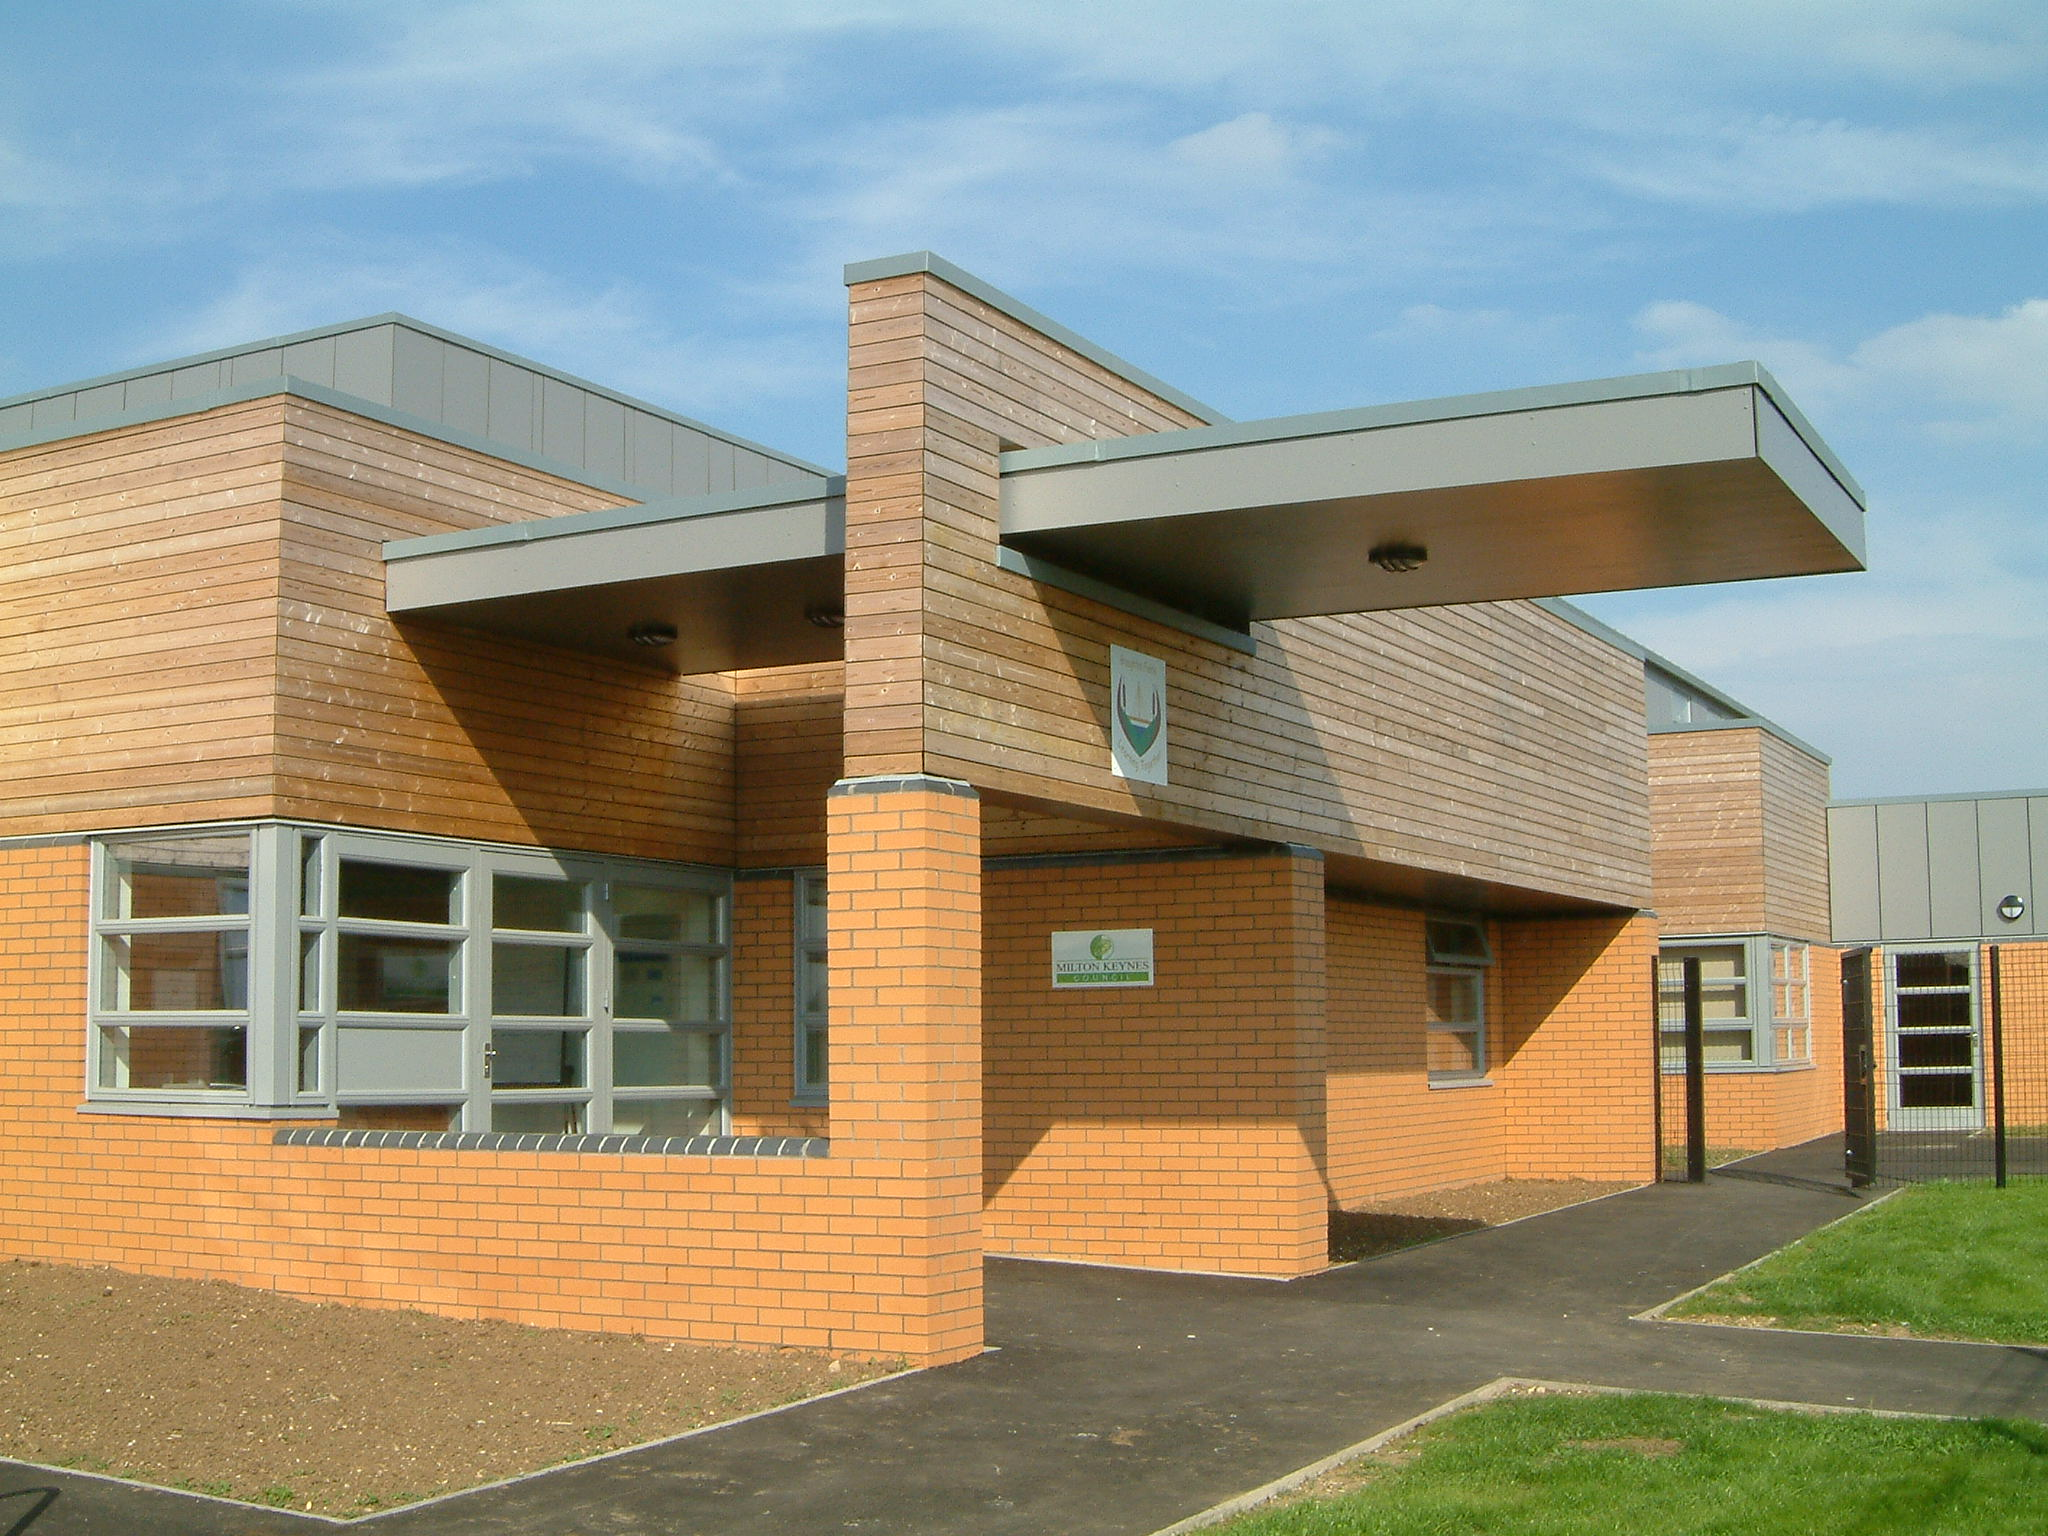 Broughton Fields Primary School, Milton Keynes